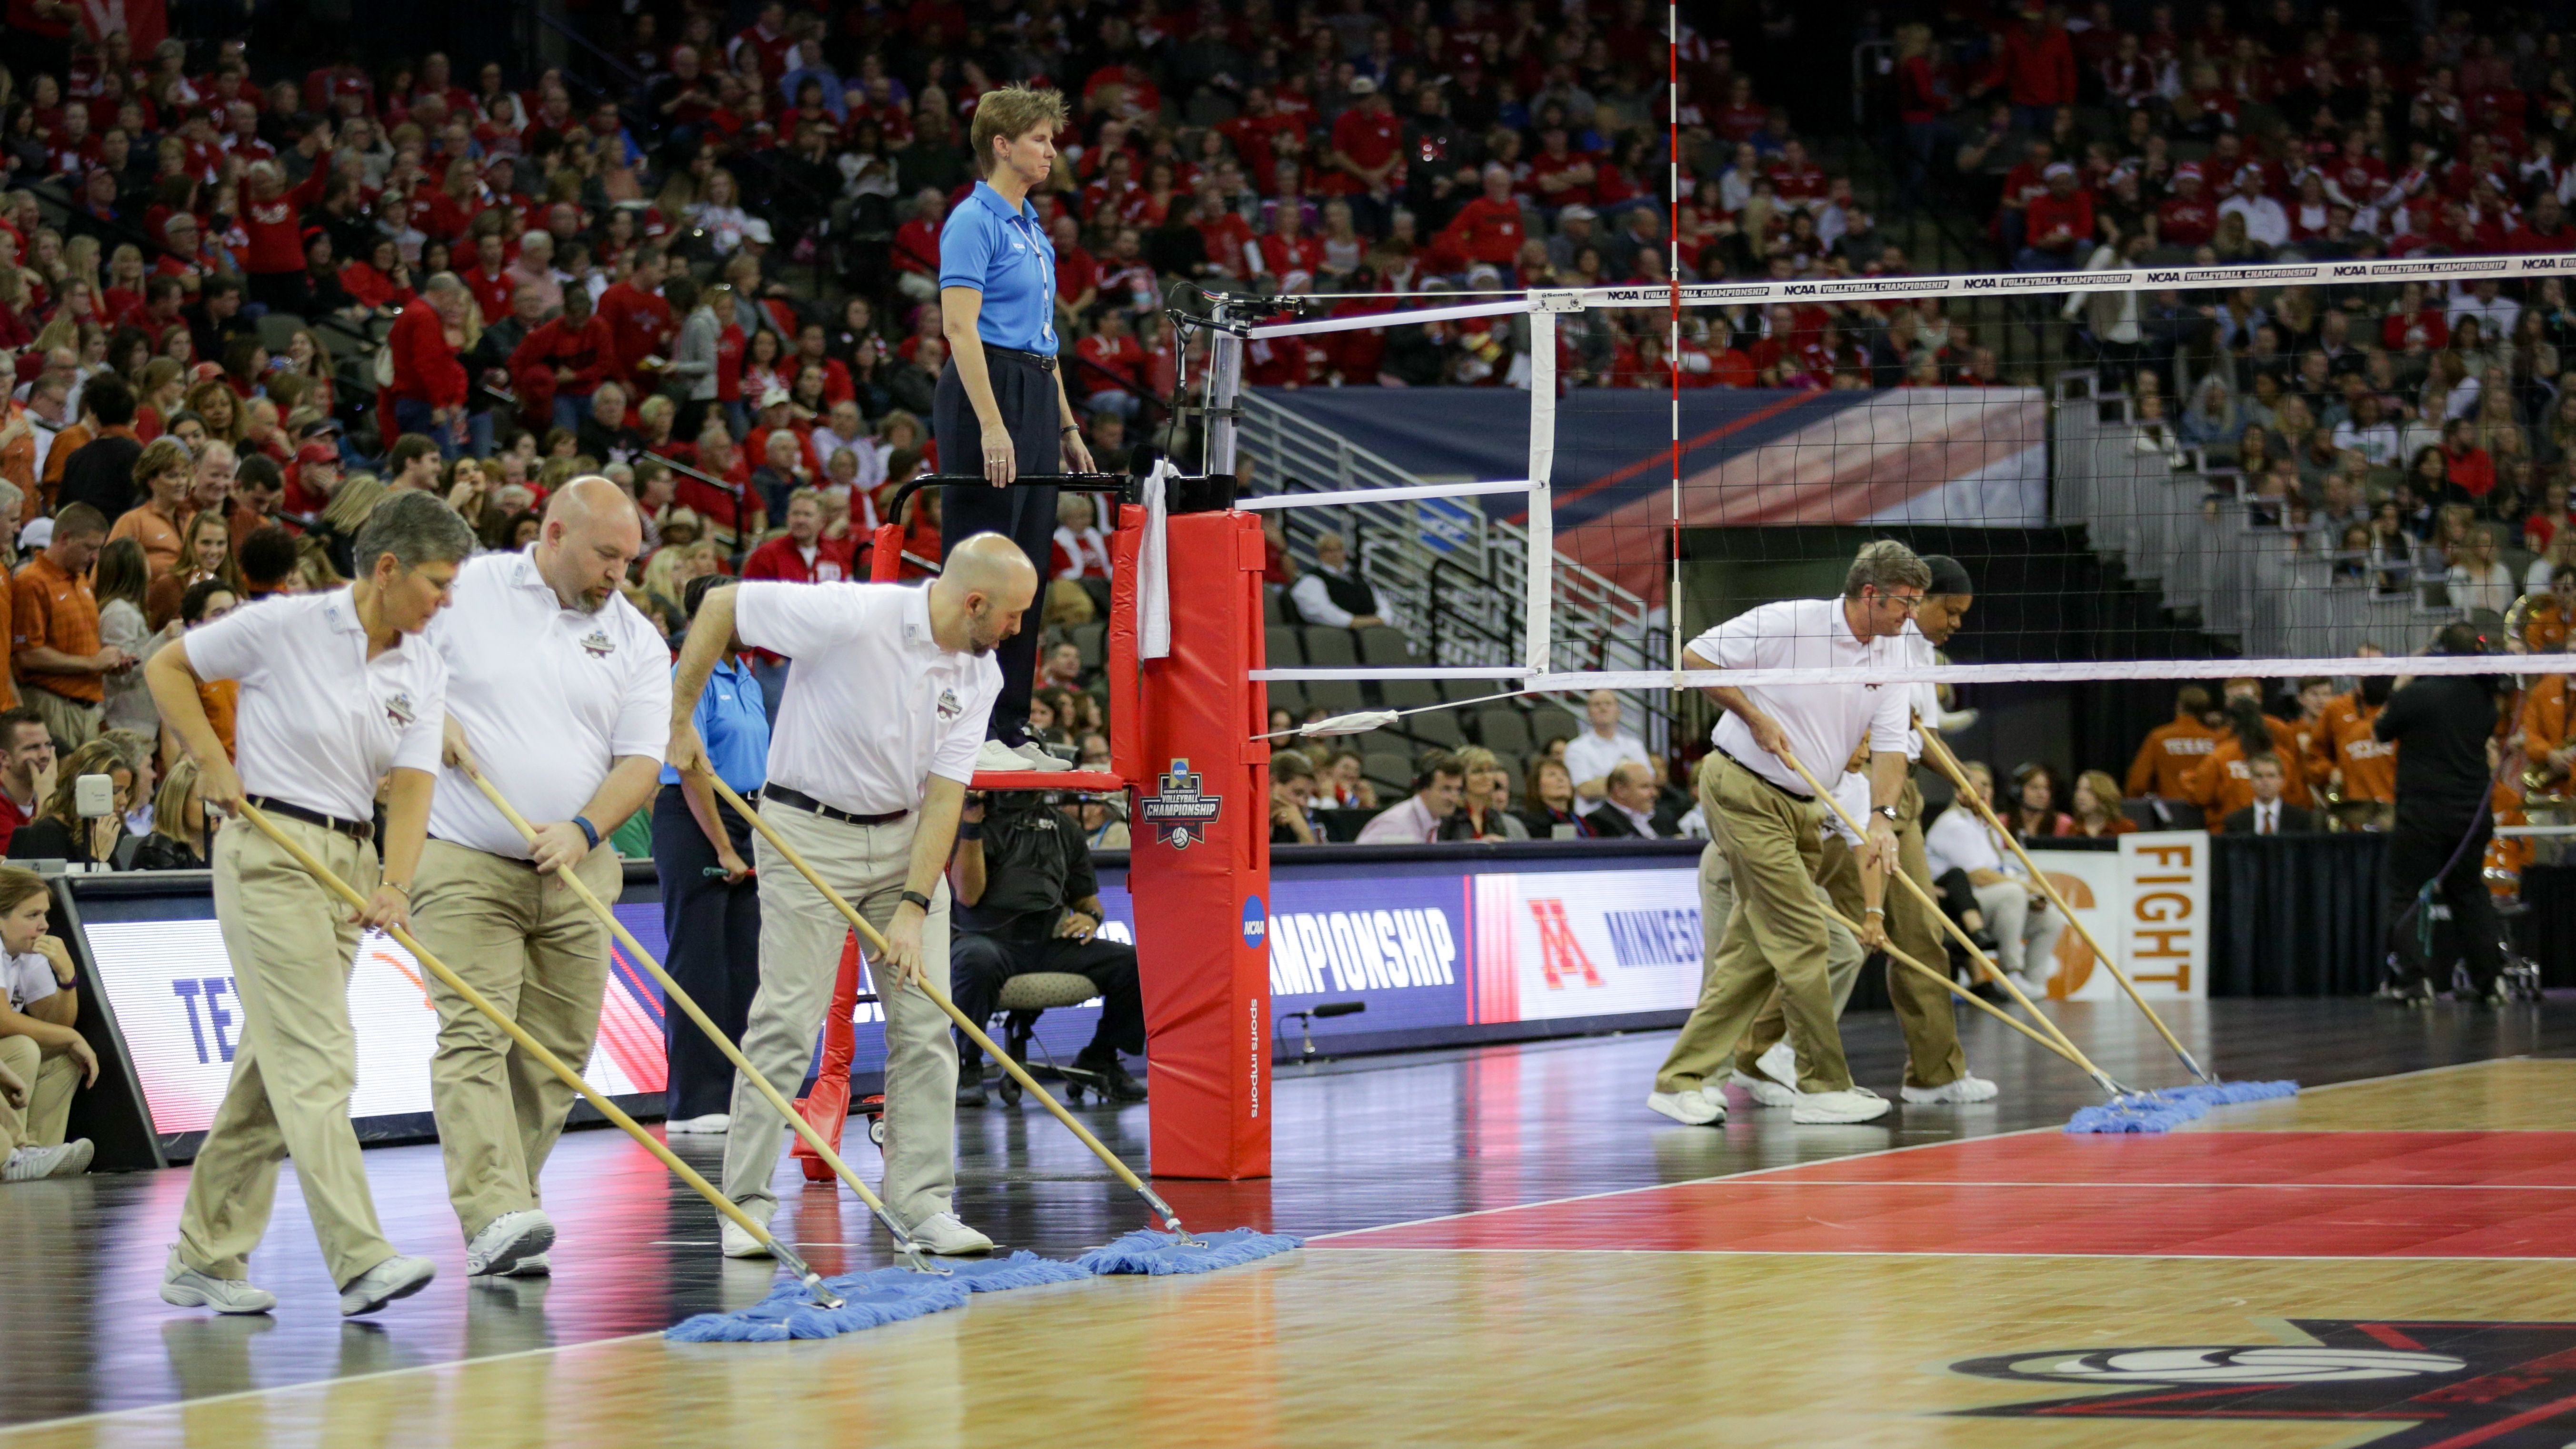 Professional Court Sweepers At The Ncaa Volleyball Championship In Omaha Nebraska Volleyball Ncaavb Volleyball Ncaa Sports